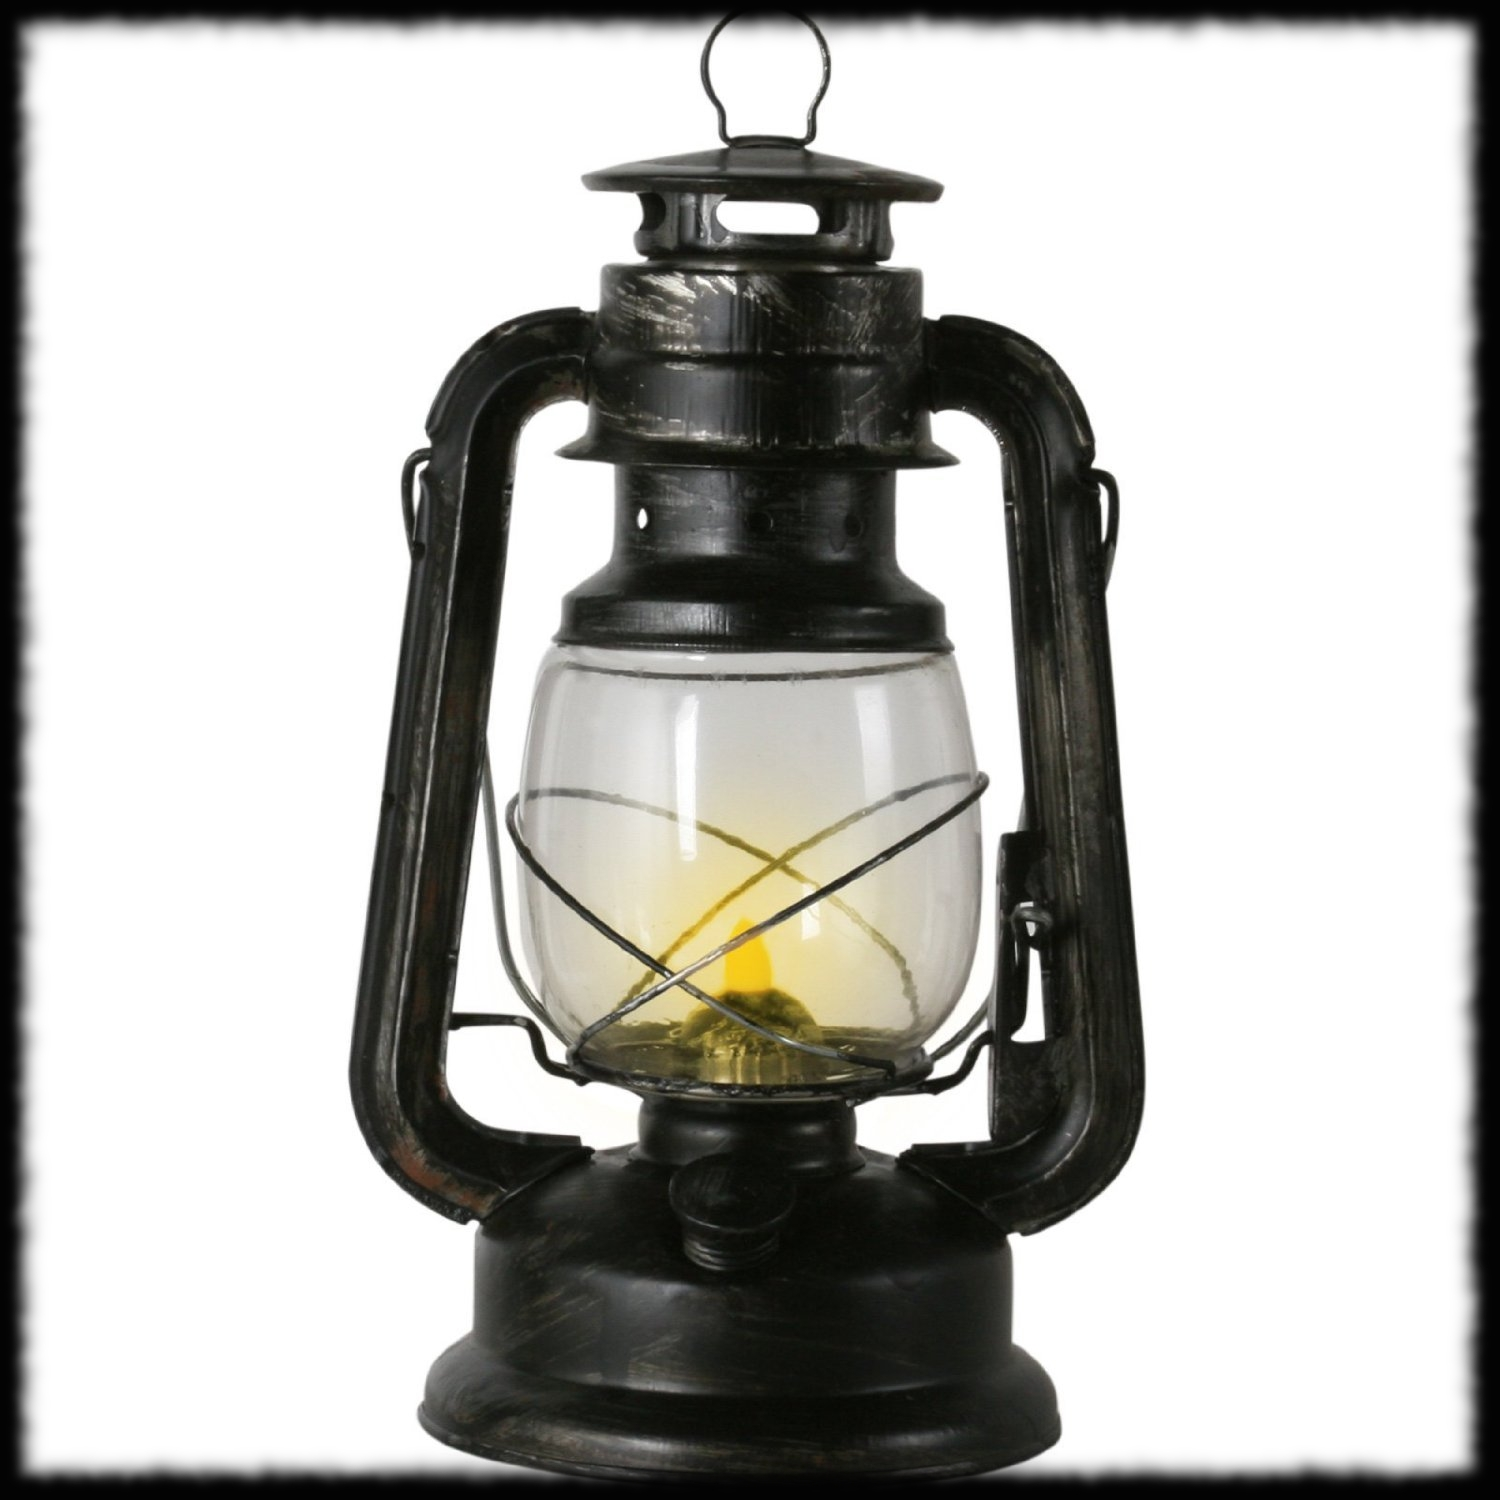 Antique Lantern LEDs with Sounds for Haunted House